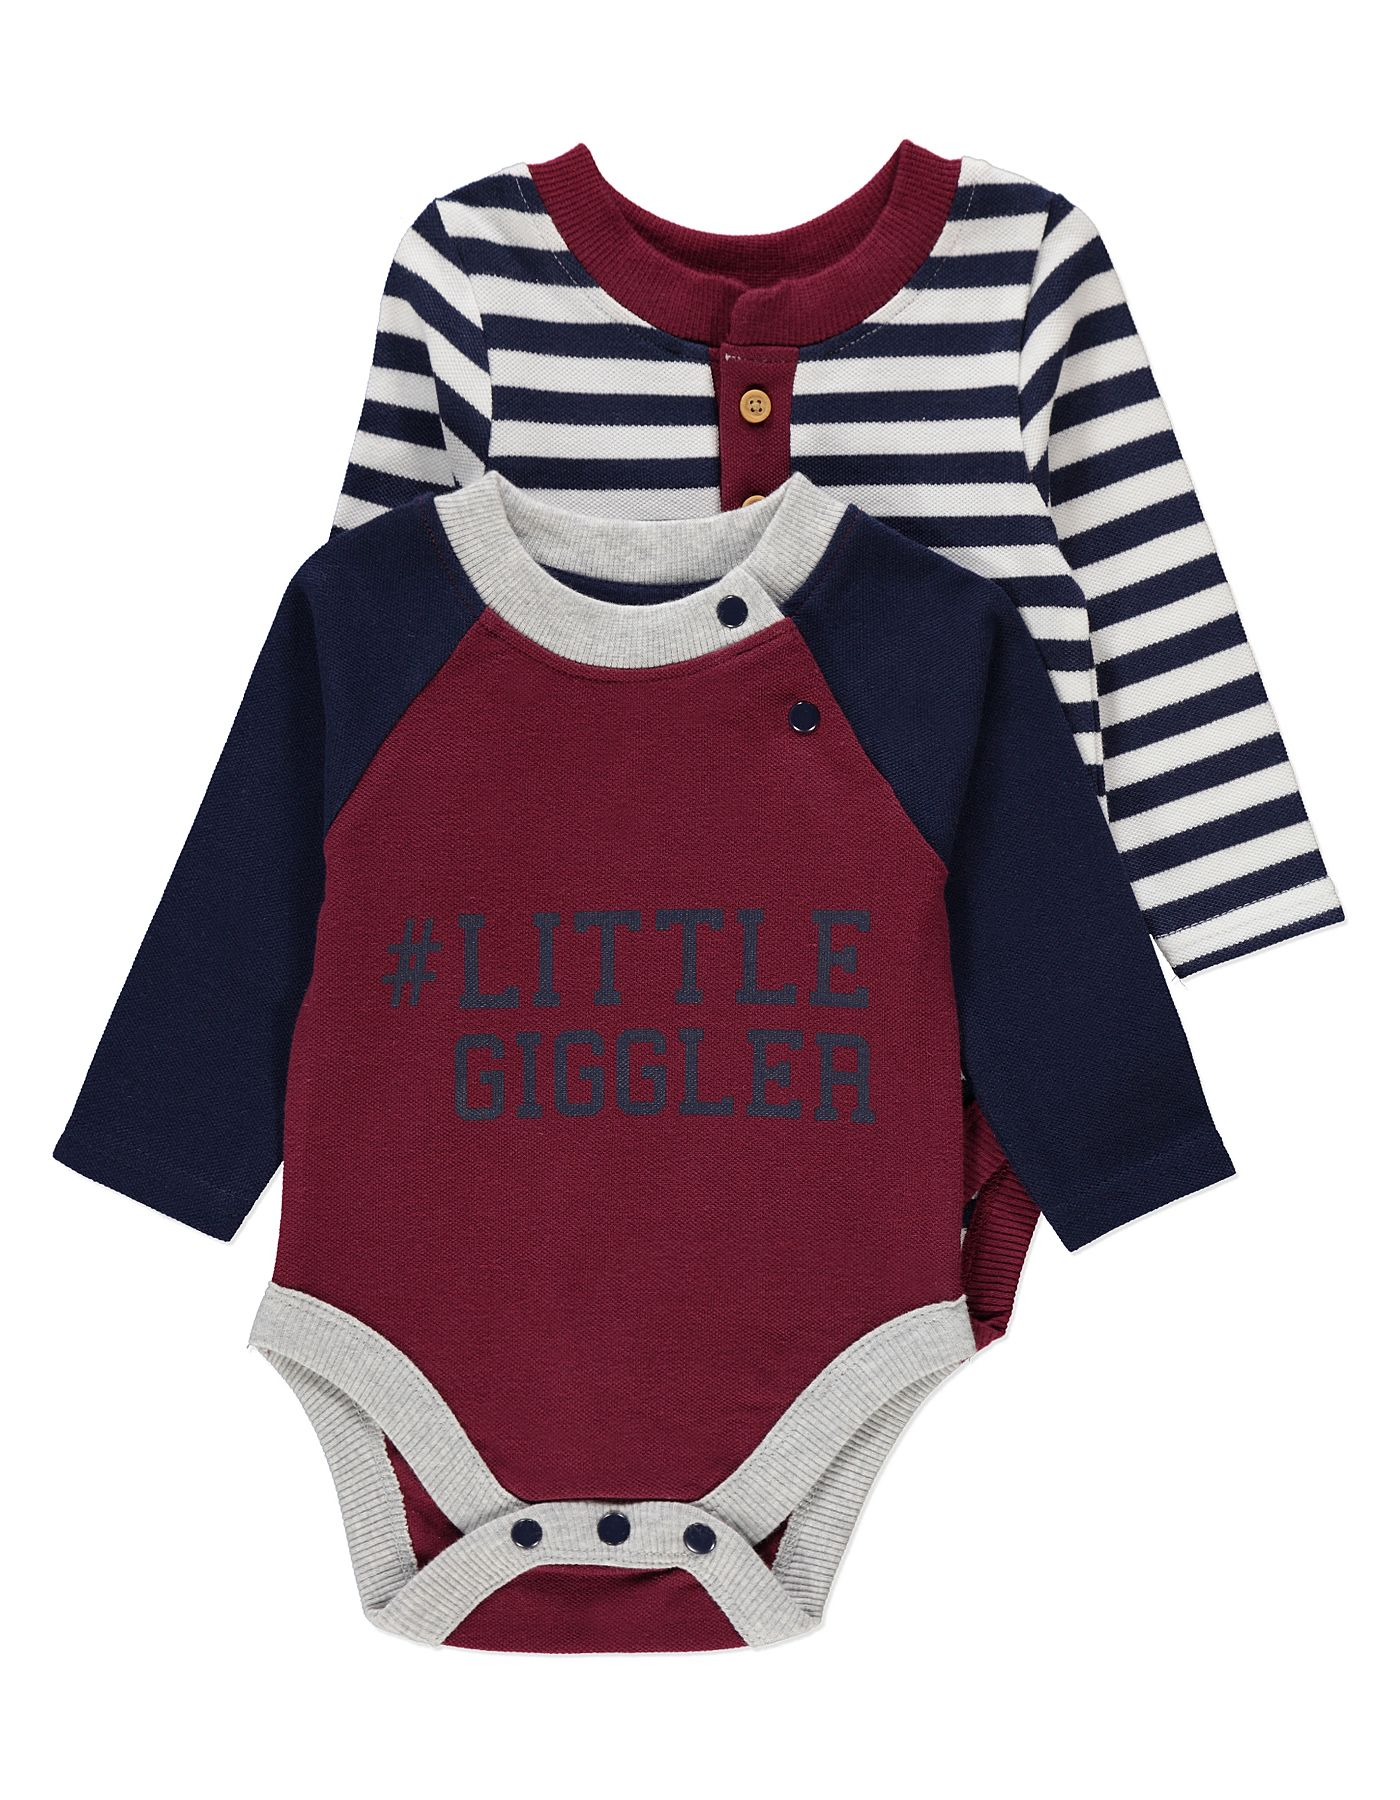 2 Pack Long Sleeve Baby Bodysuits Baby George At Asda Ideias